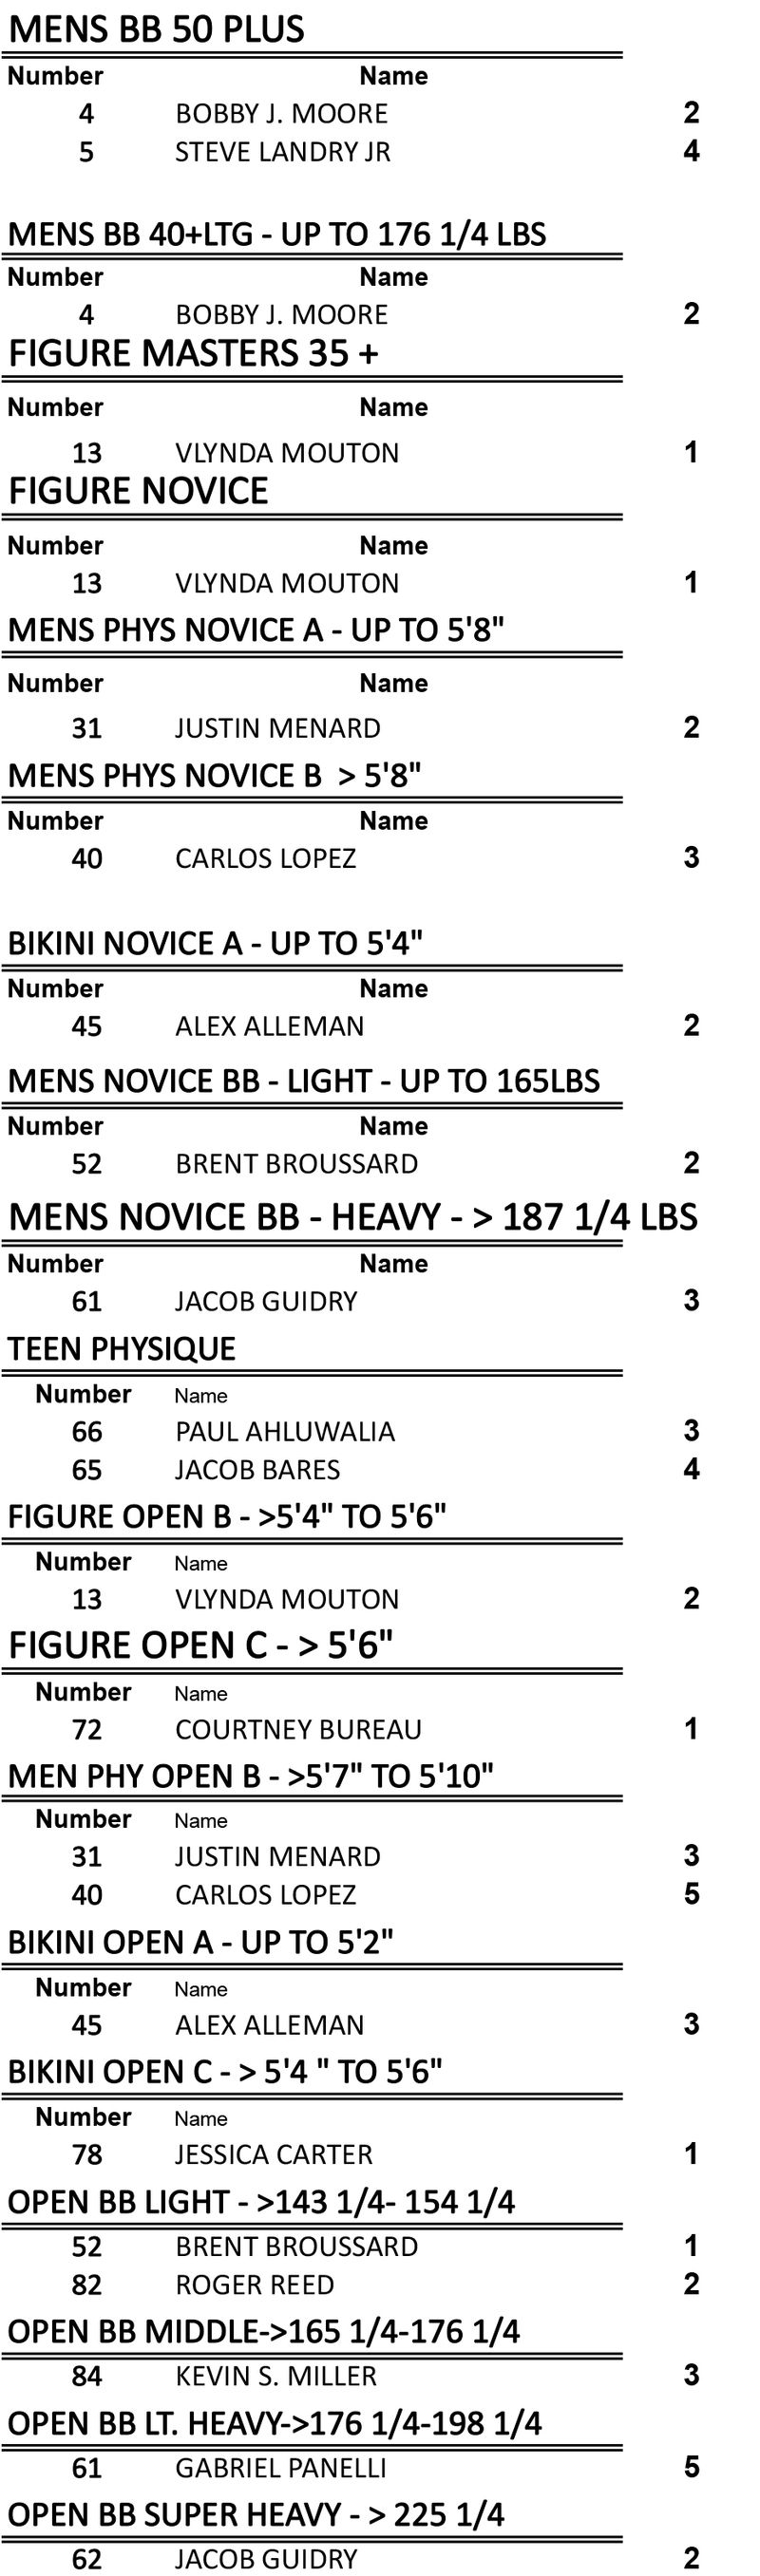 Copy of 2015 NPC RESULTS & OVERALL FOR CONNIE AT REDS.xlsx